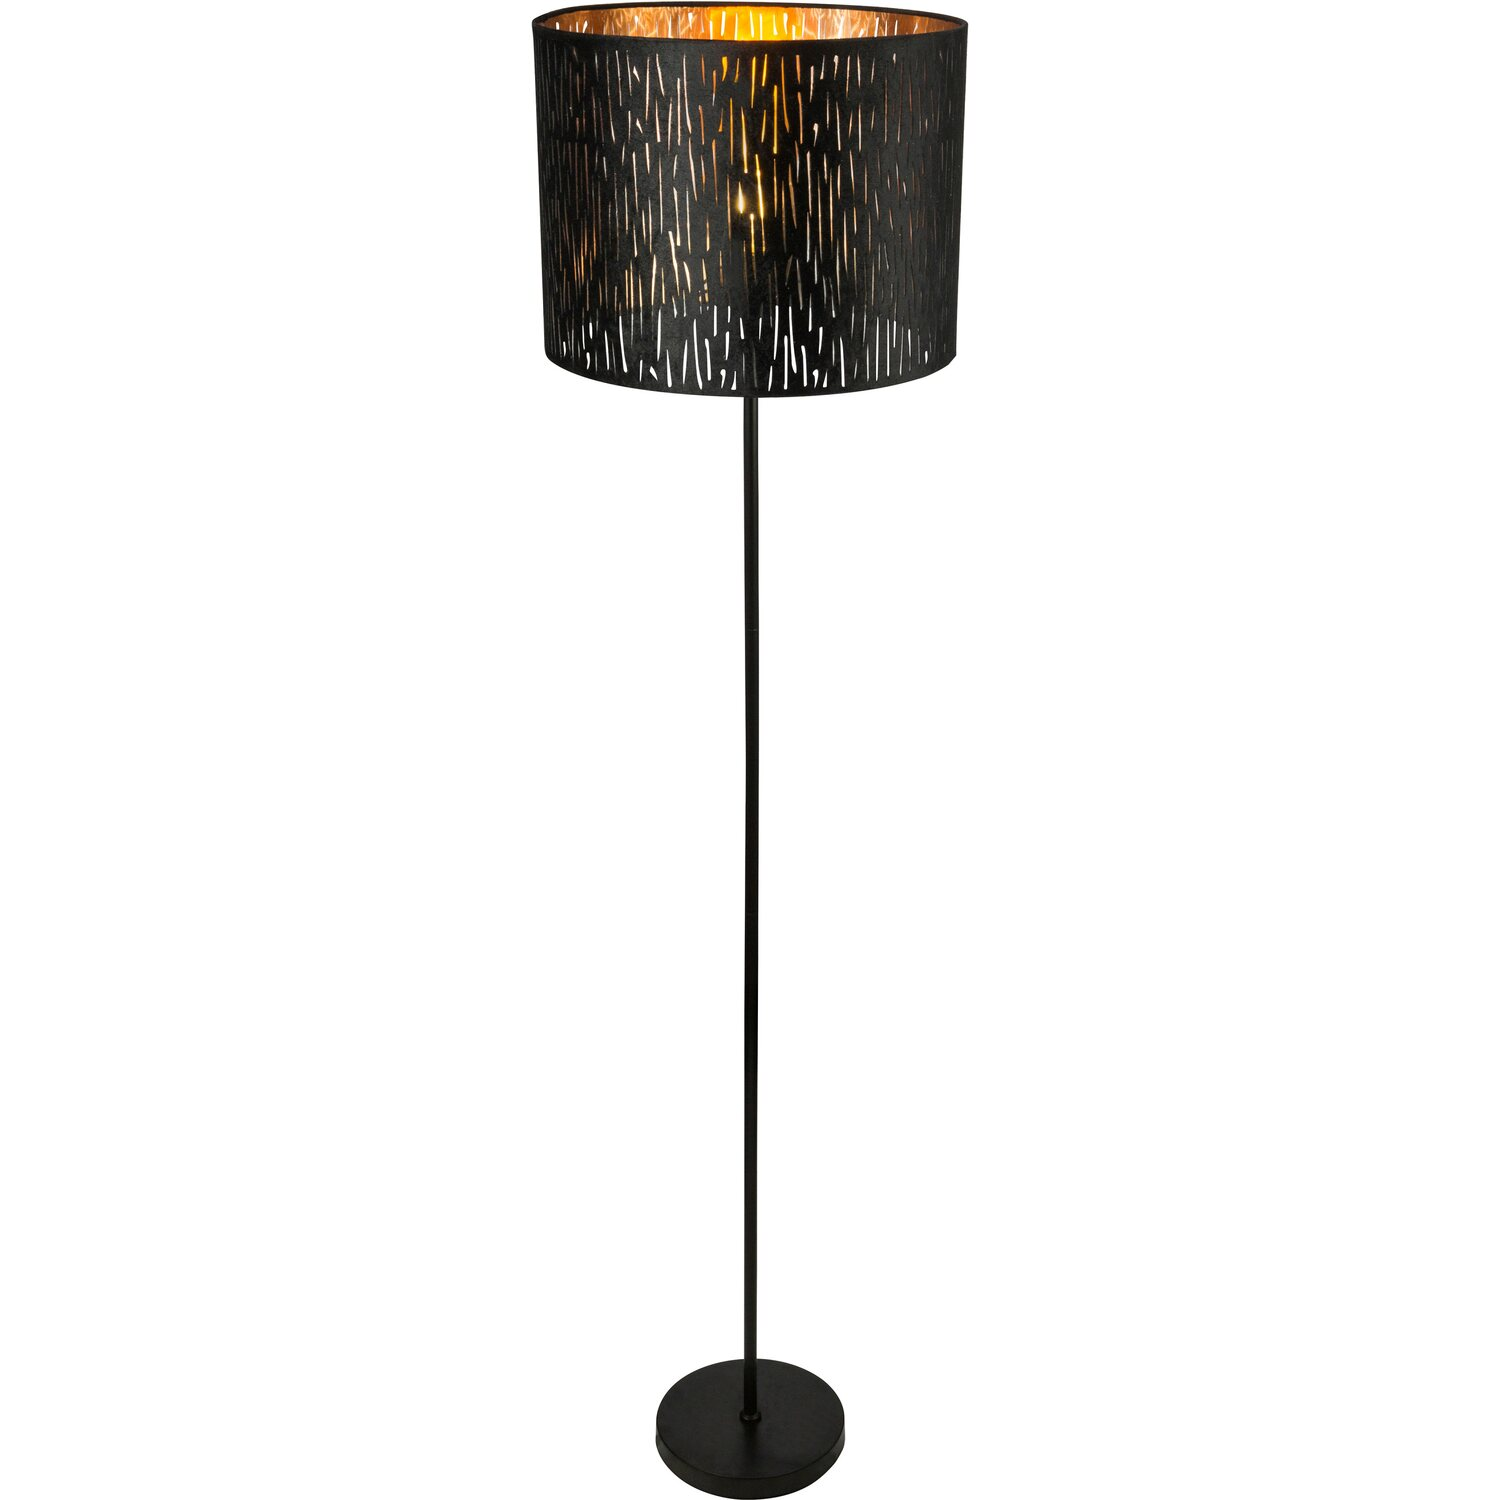 Stehlampe Led Dimmbar Gold Zuhause